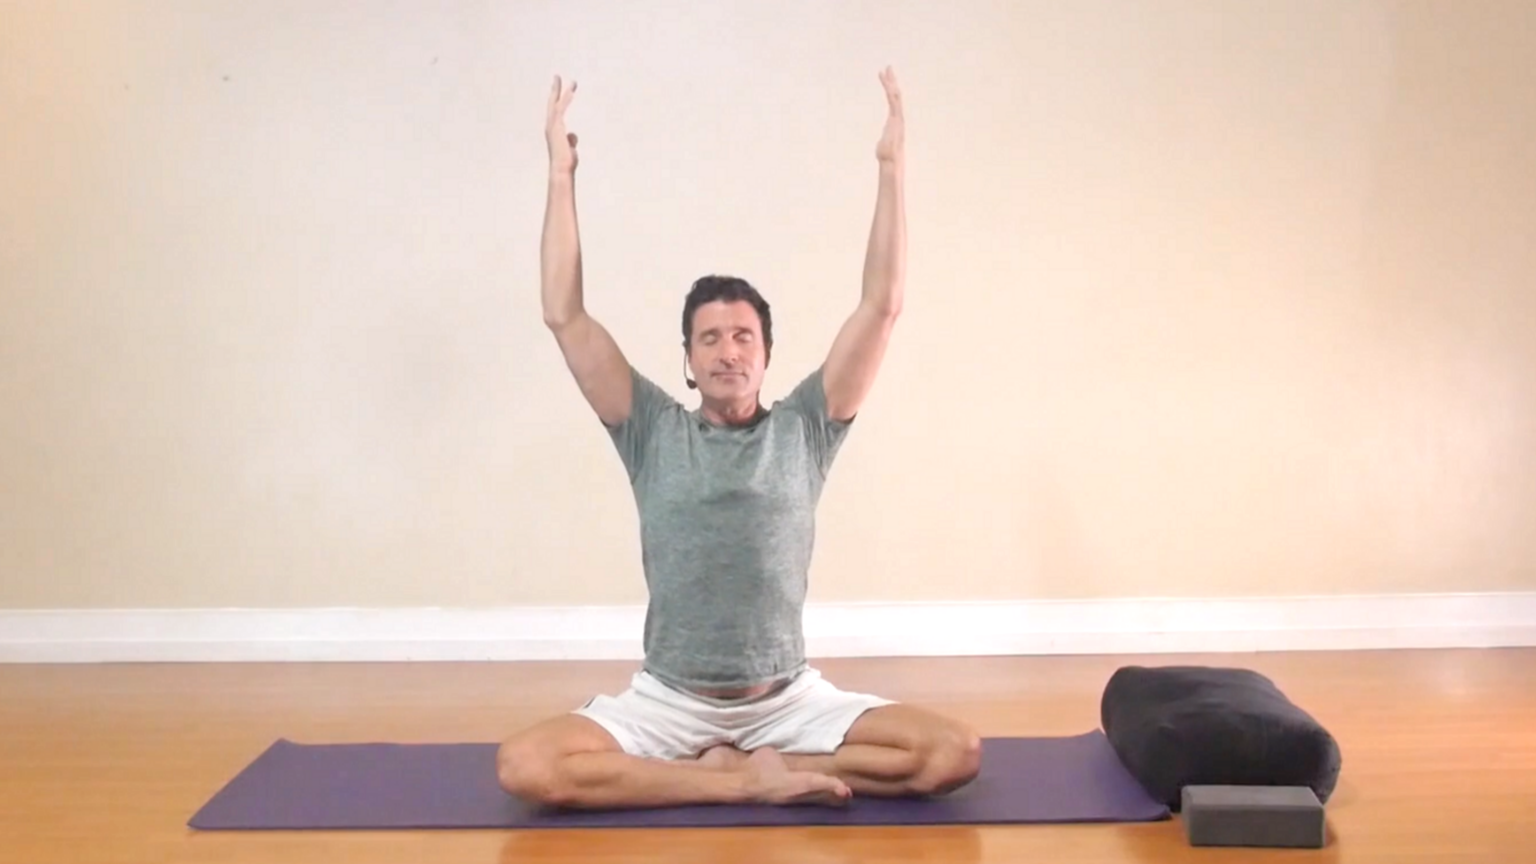 James Knight practicing Gentle Somatic Yoga seated pose arms raised